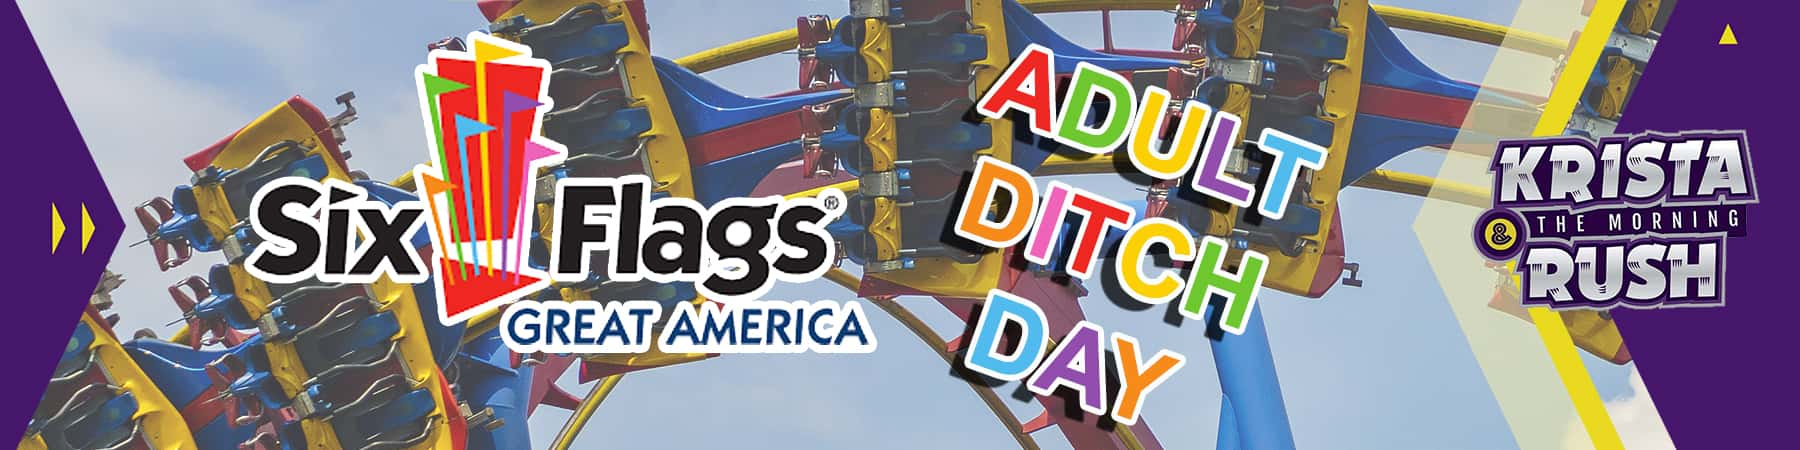 Six Flags Great America Adult Ditch Day 2019 | 93 1 JAMZ